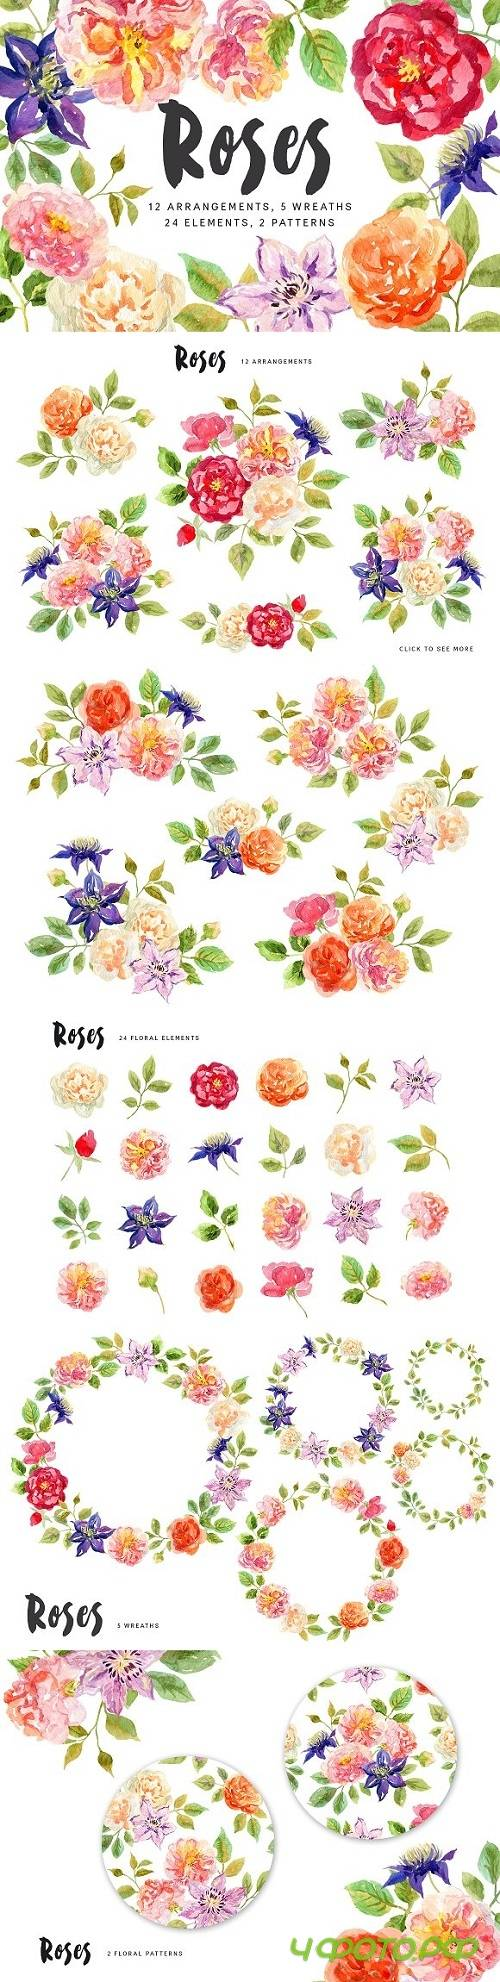 Roses. Watercolor collection - 1759881